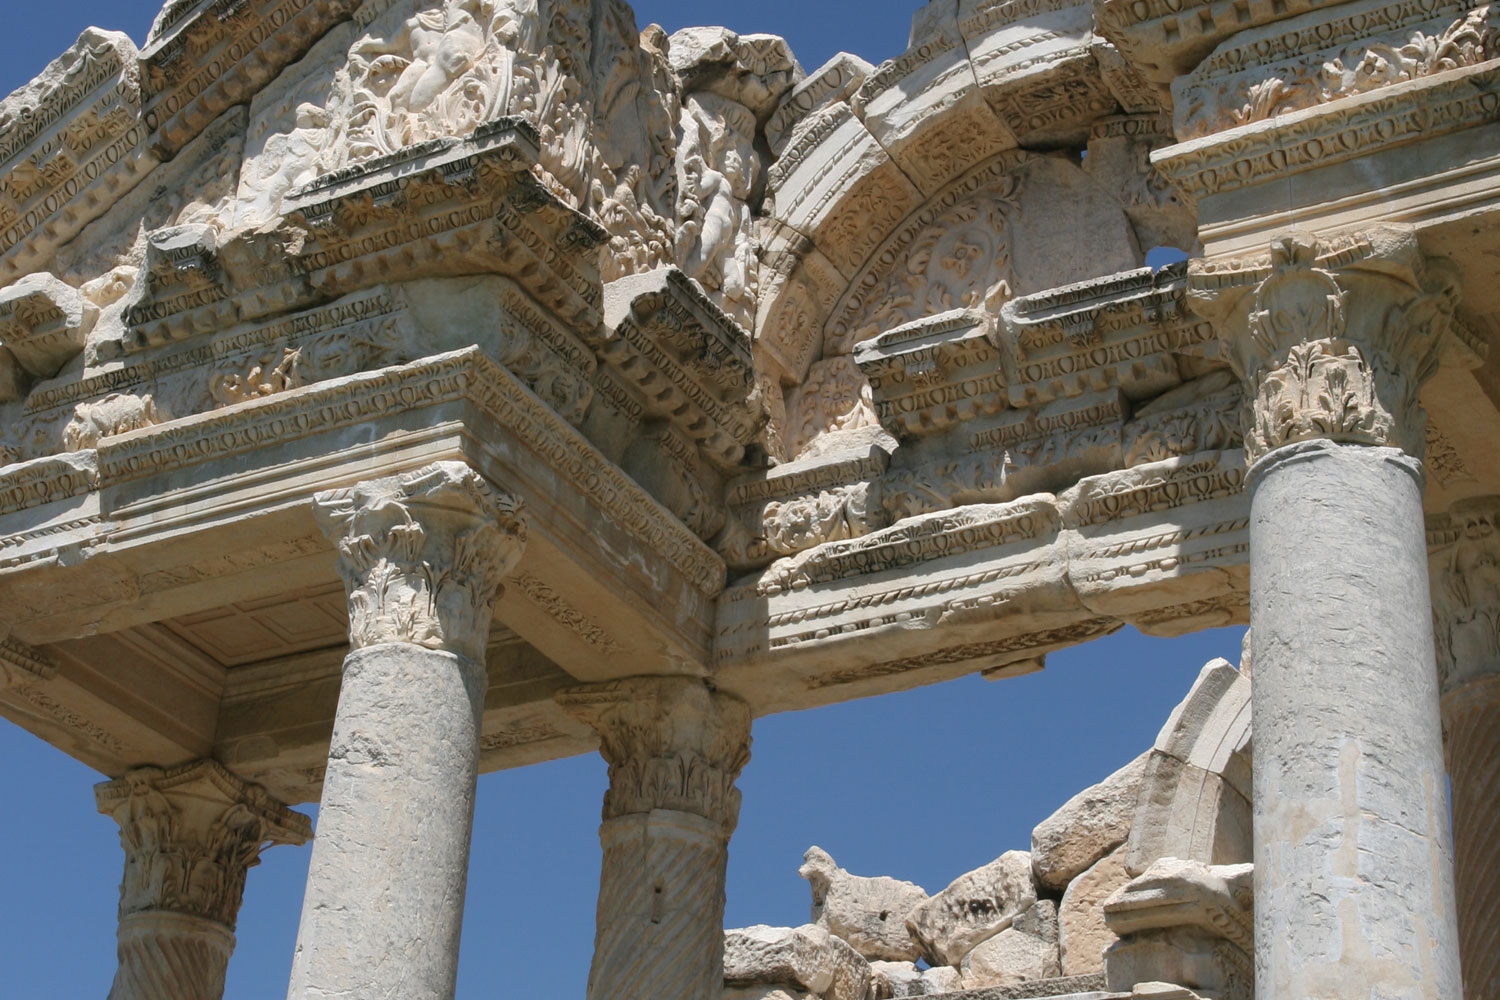 Le site antique d'Aphrodisias